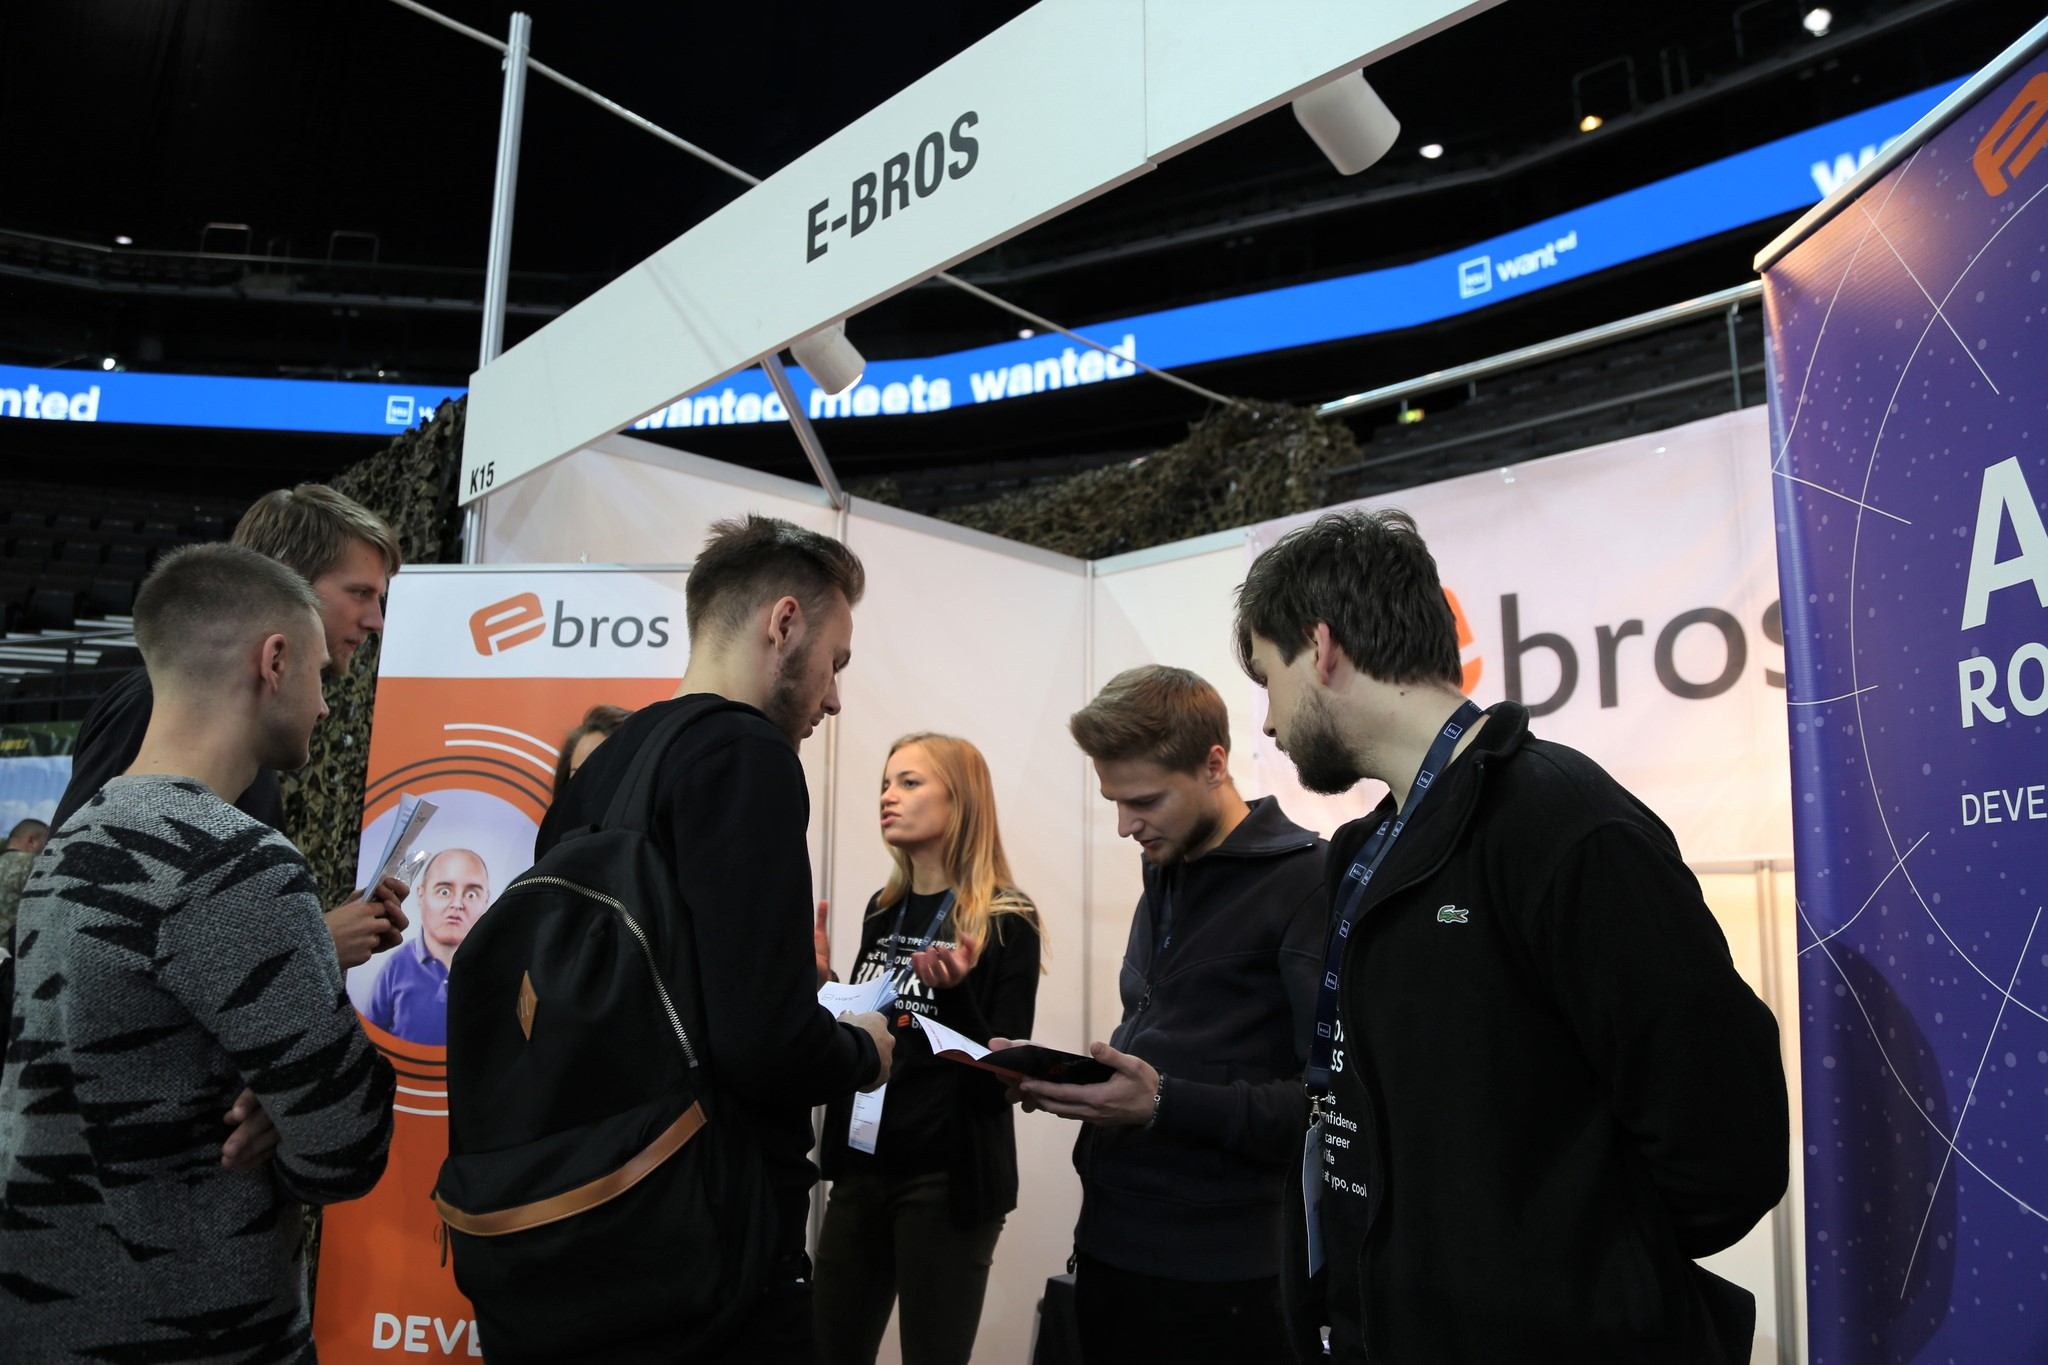 E-Bros team at KTU Career Event